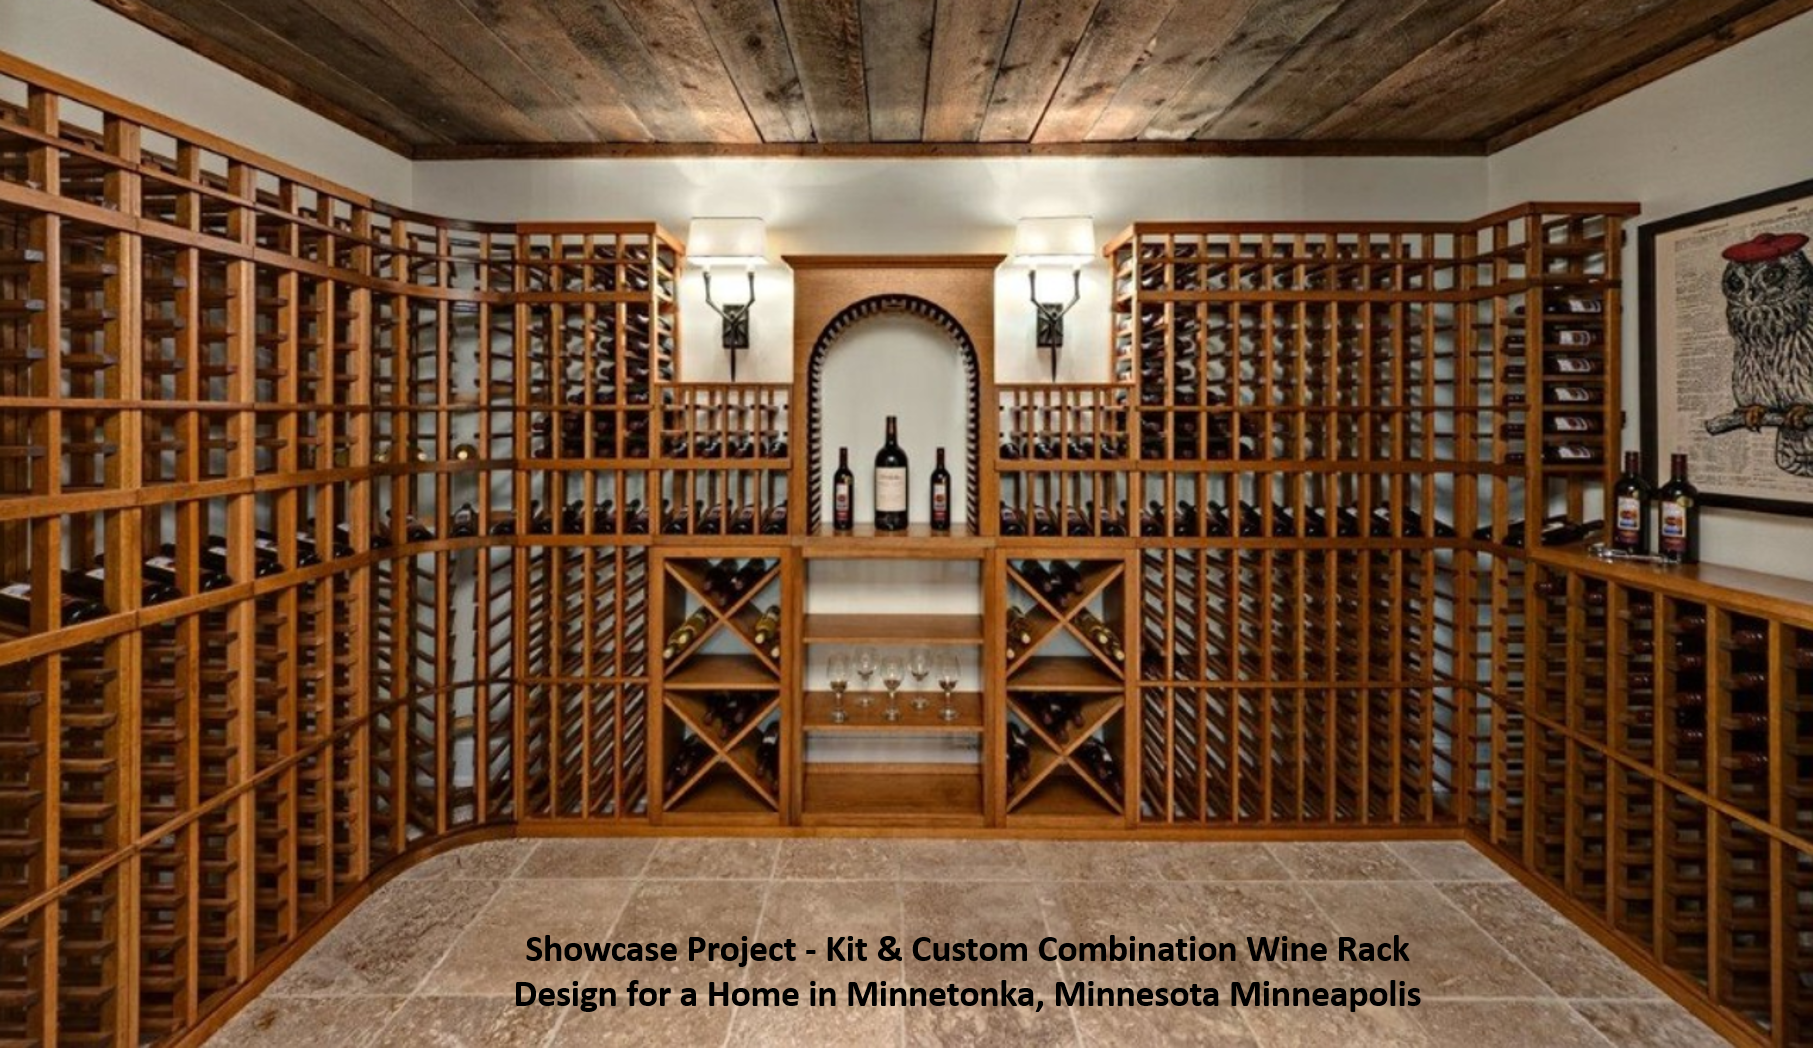 ... Showcase Project Kit Custom Combination Wine Rack Design For A Home In Minnetonka Minnesota Minneapolis.png  ...